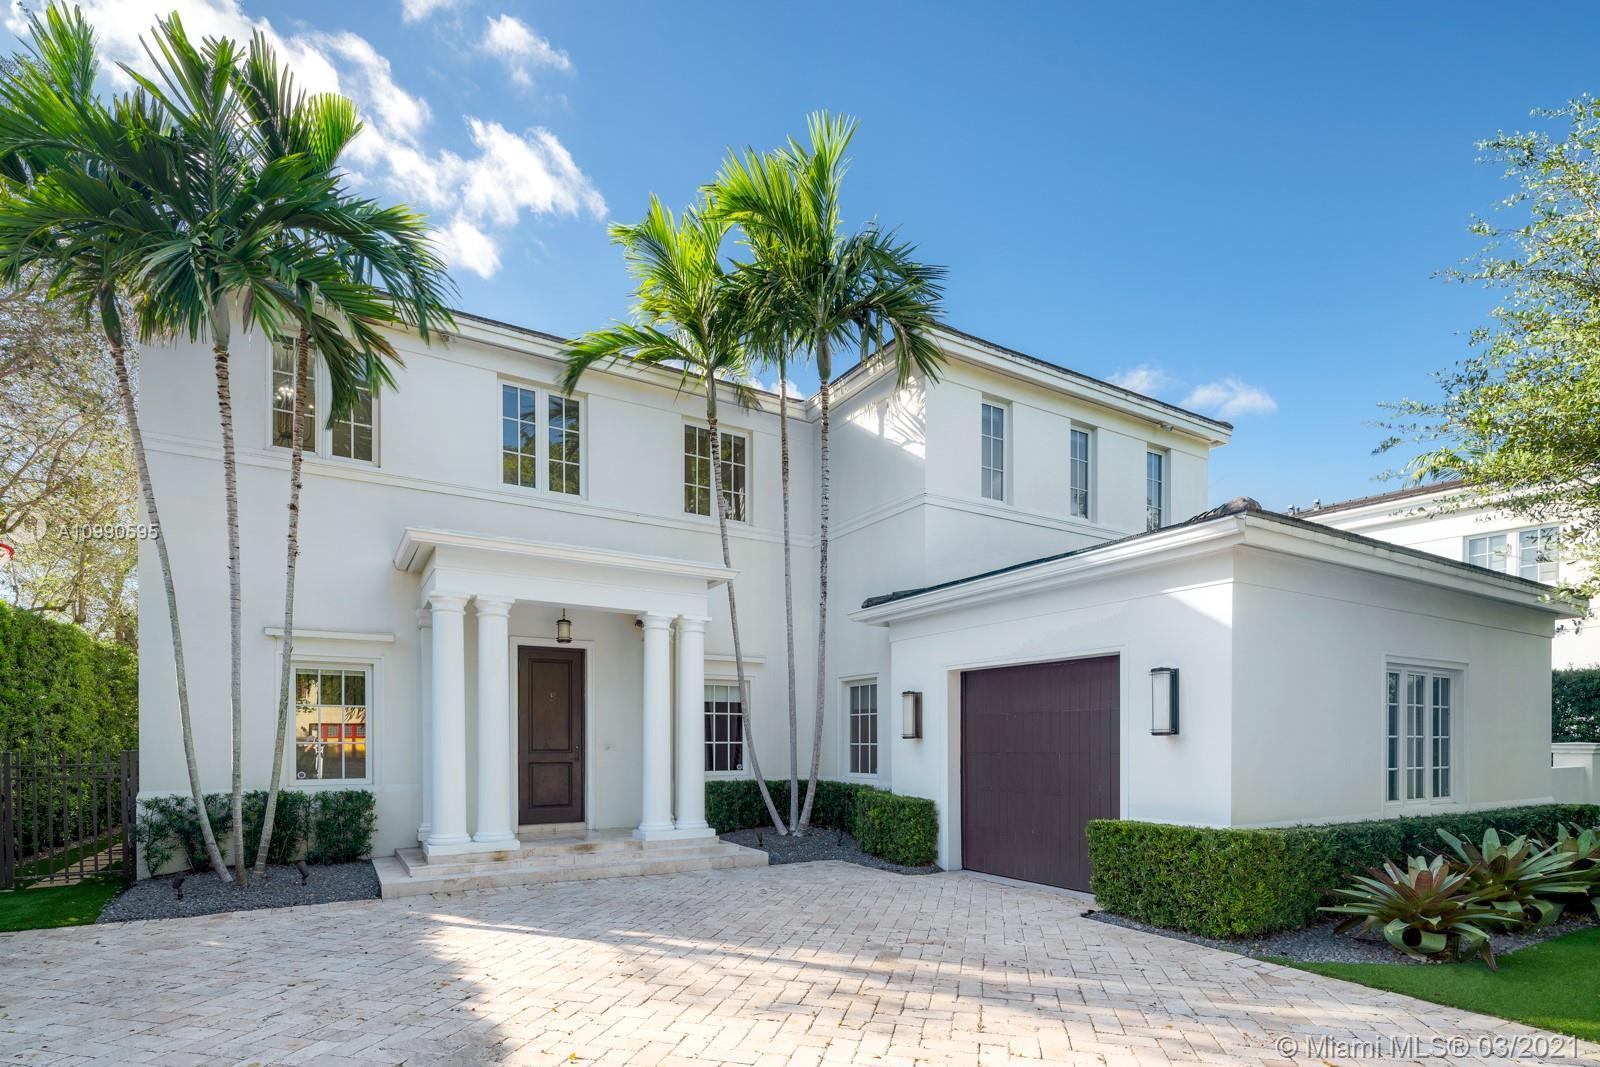 Gorgeous waterfront home located on the prestigious Coral Gables Waterway. It is a stunning contempo